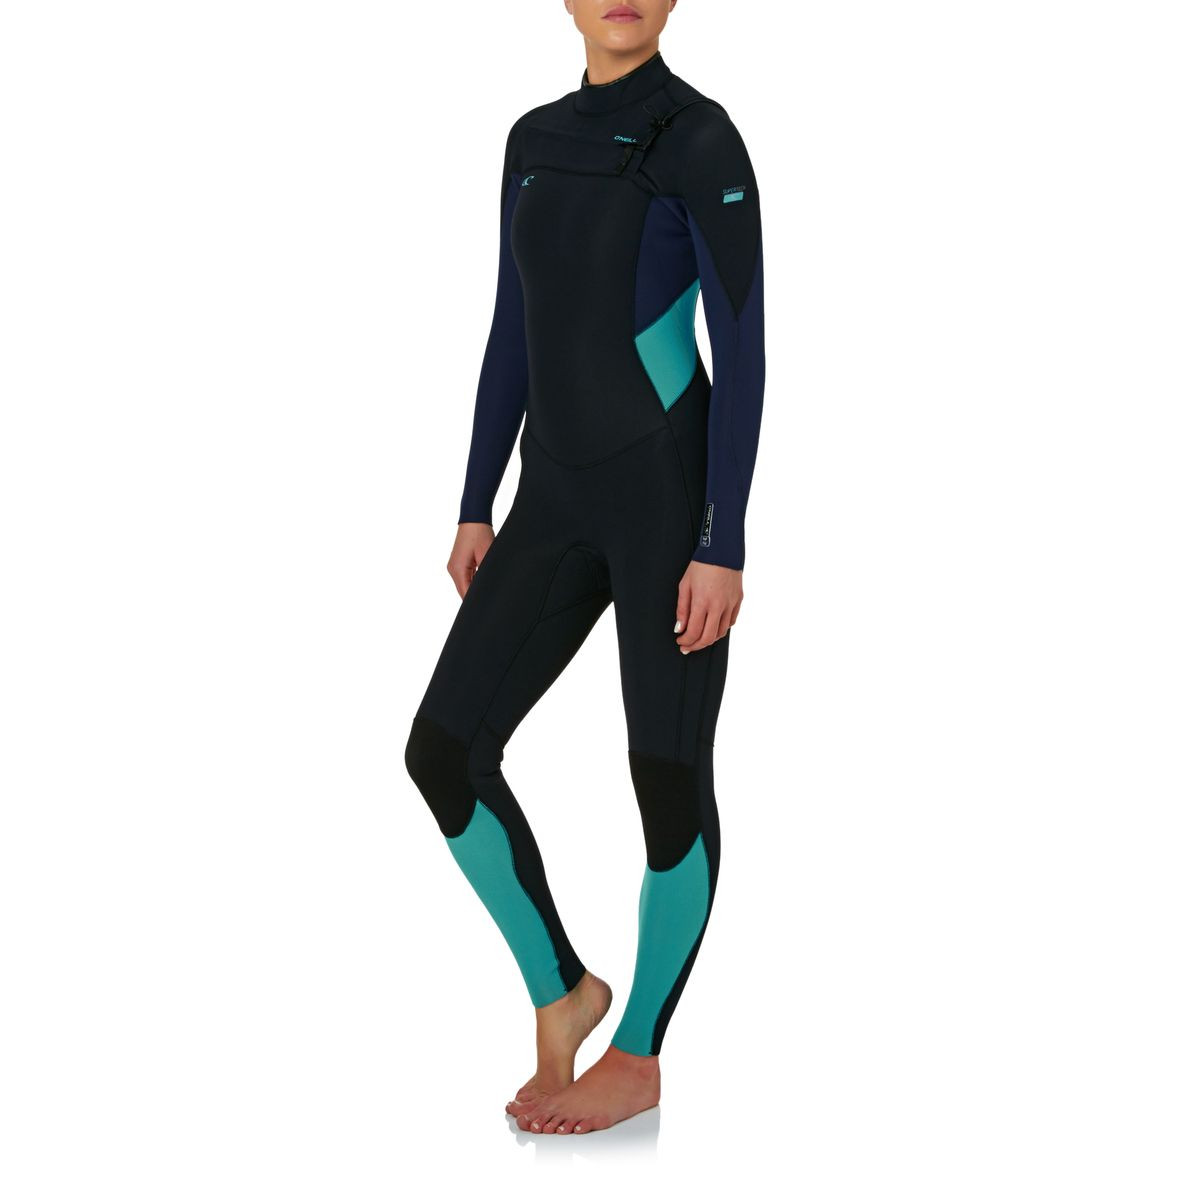 O'Neill Womens Supertech 3/2mm Chest Zip Wetsuit - Black/ Navy/ Light Aqua